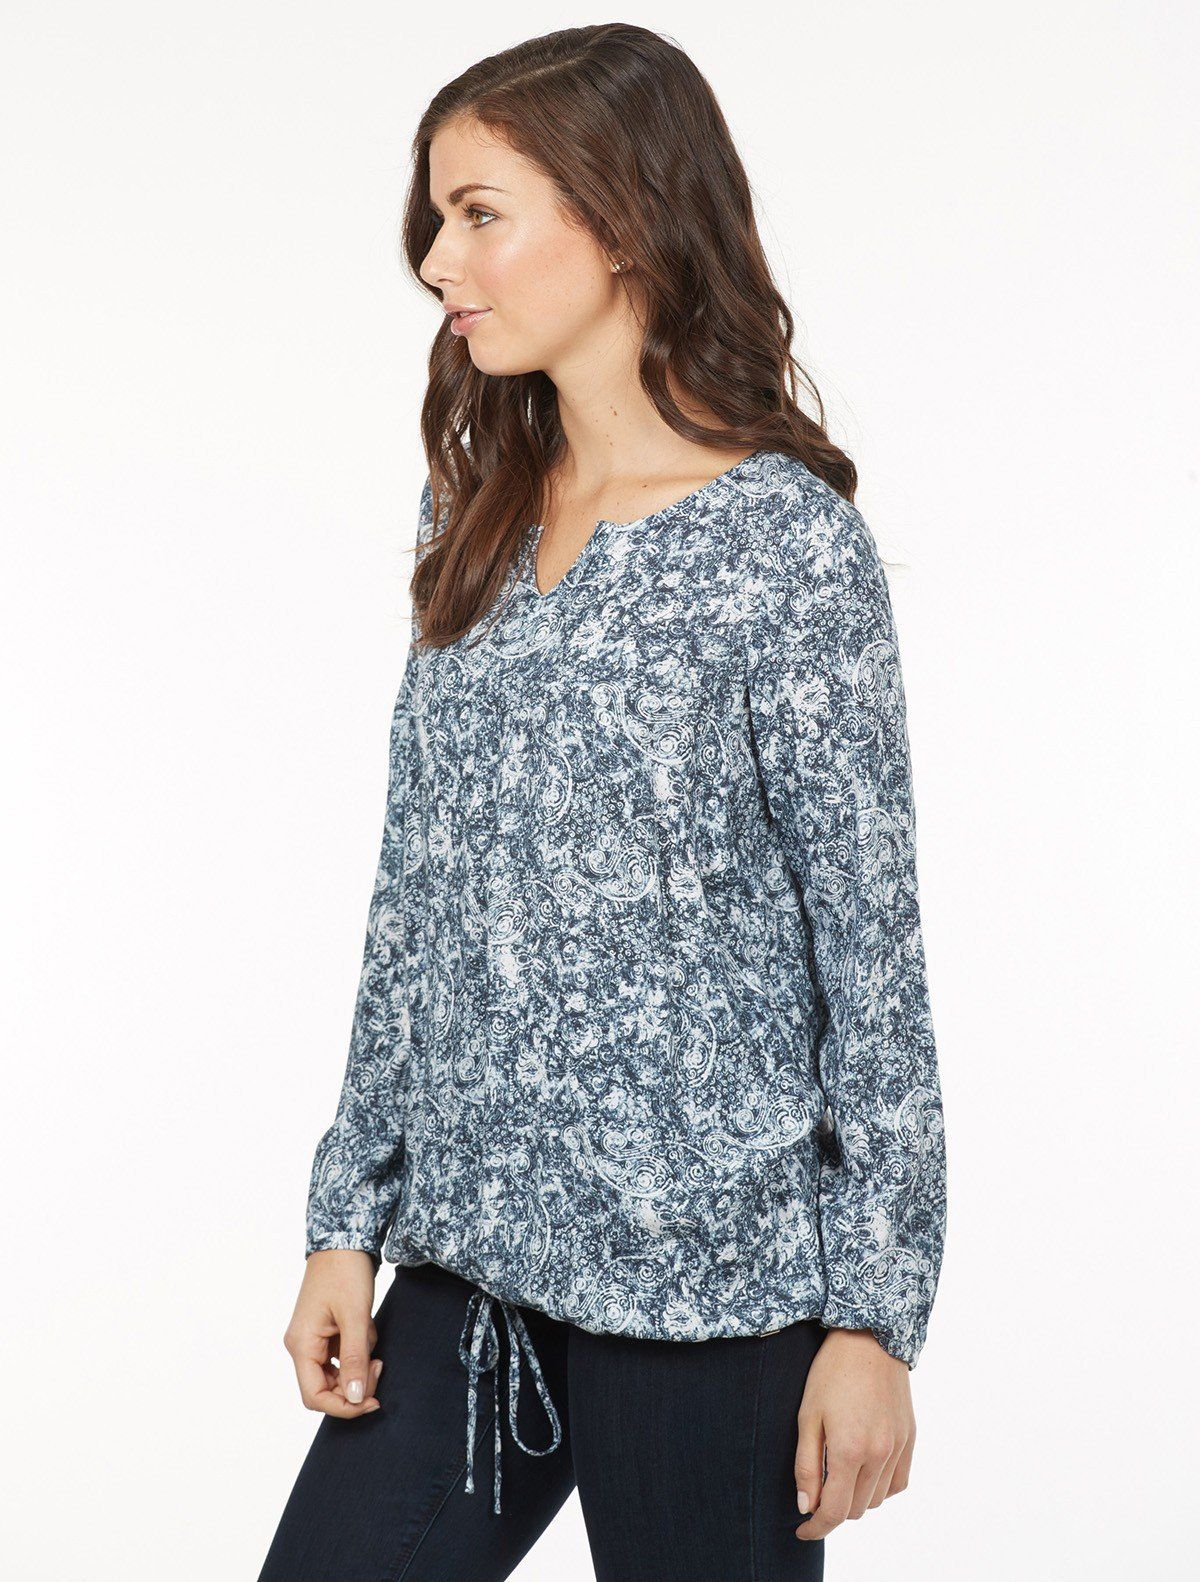 Fdj french dressing jeans paisley popover blouse french